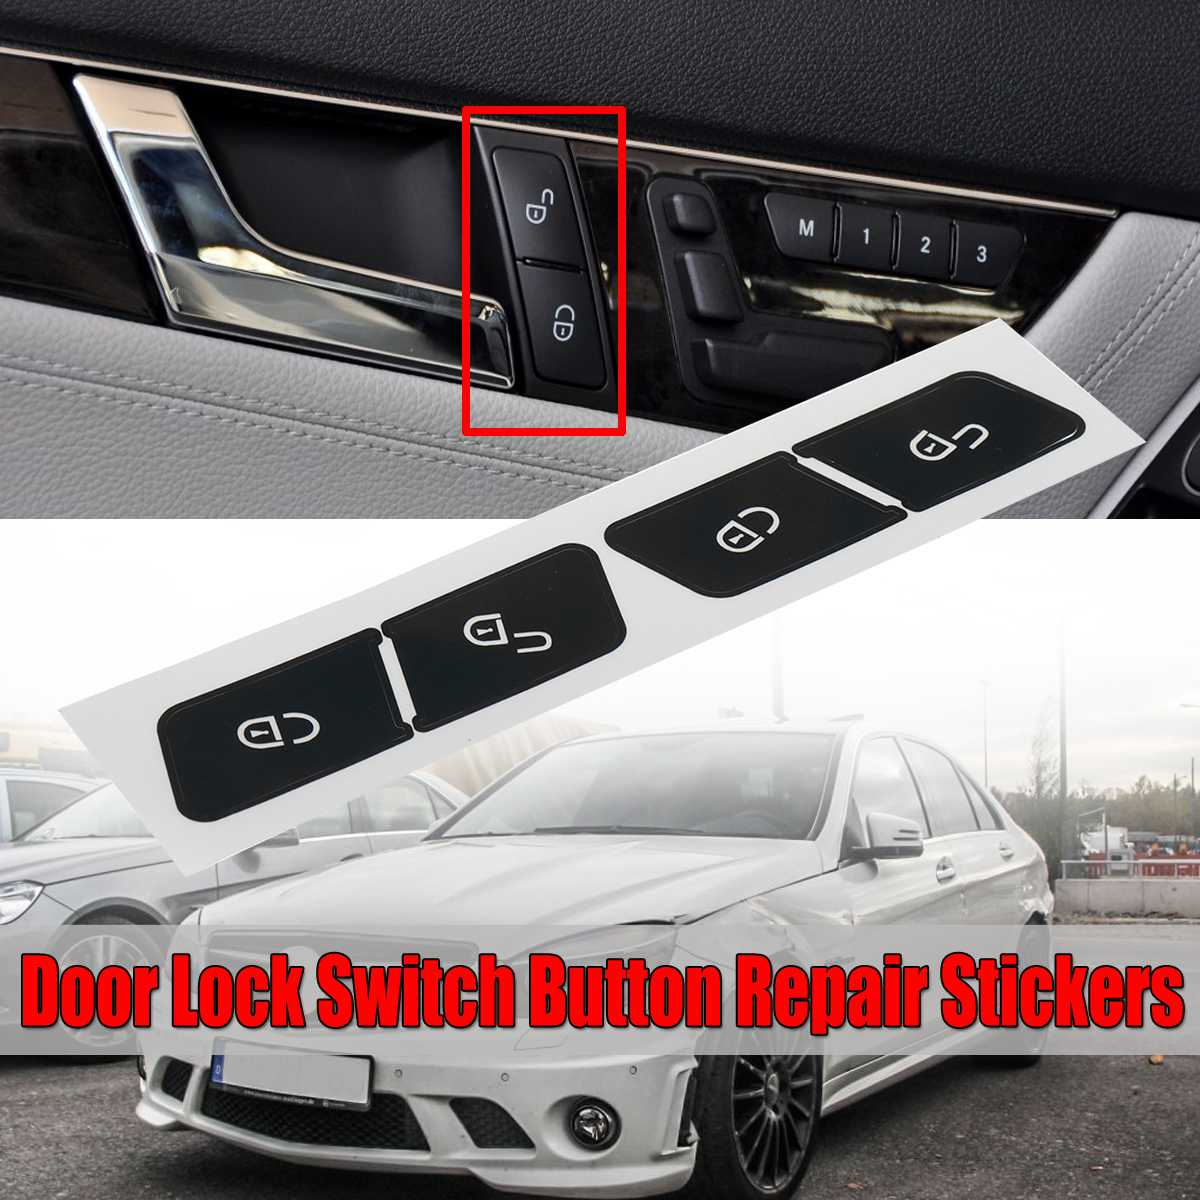 1x Car Inner Door Lock Switch Button Repair Car Stickers Decals For <font><b>Mercedes</b></font> For Benz W204 <font><b>C300</b></font> 2007-2014 Fix Ugly Button image